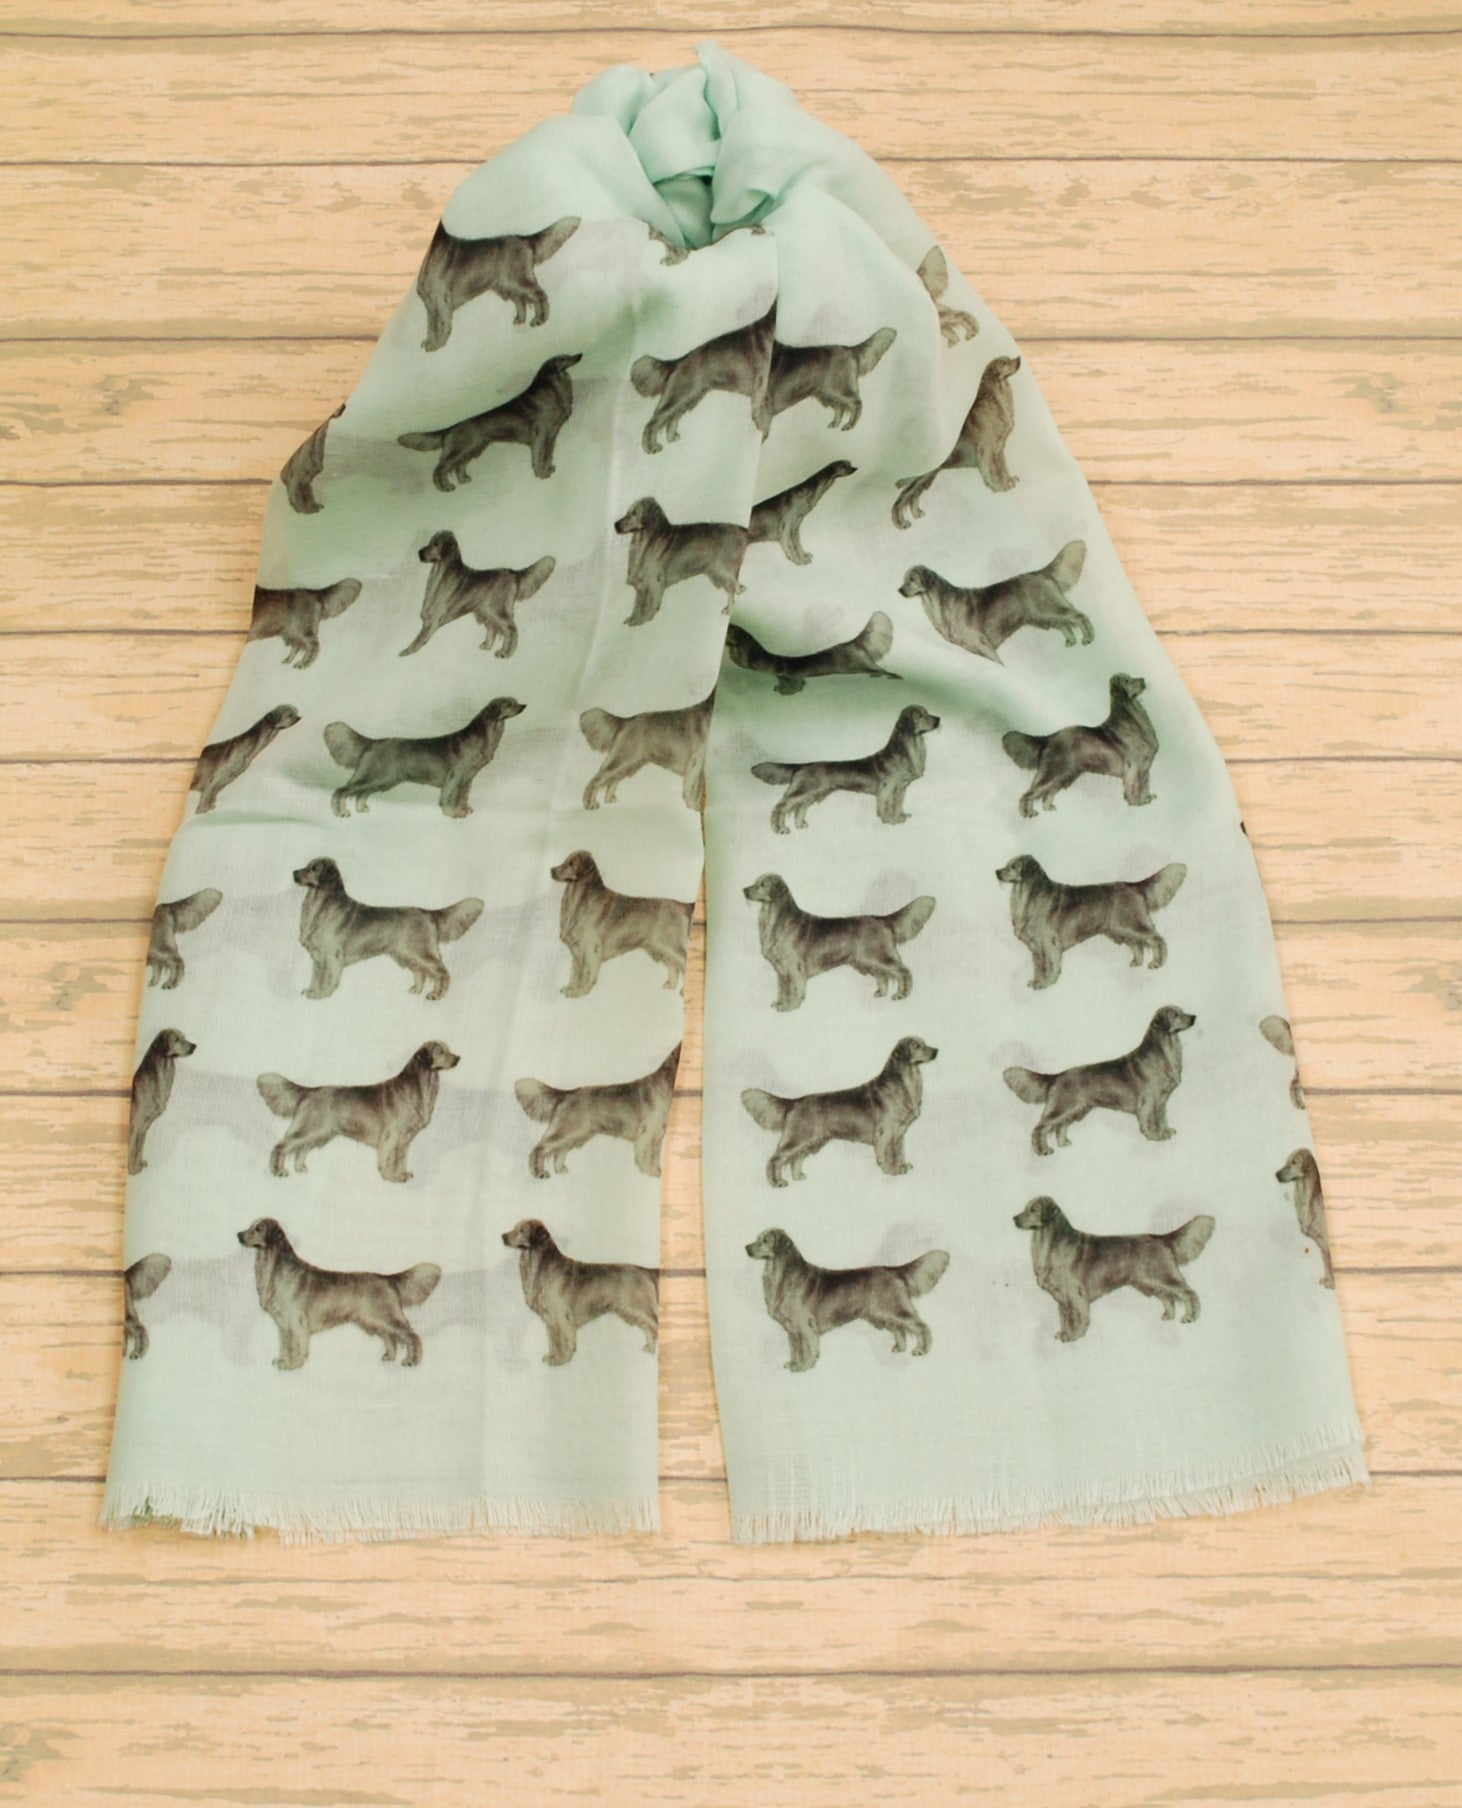 Golden Retriever scarf hand printed in the UK